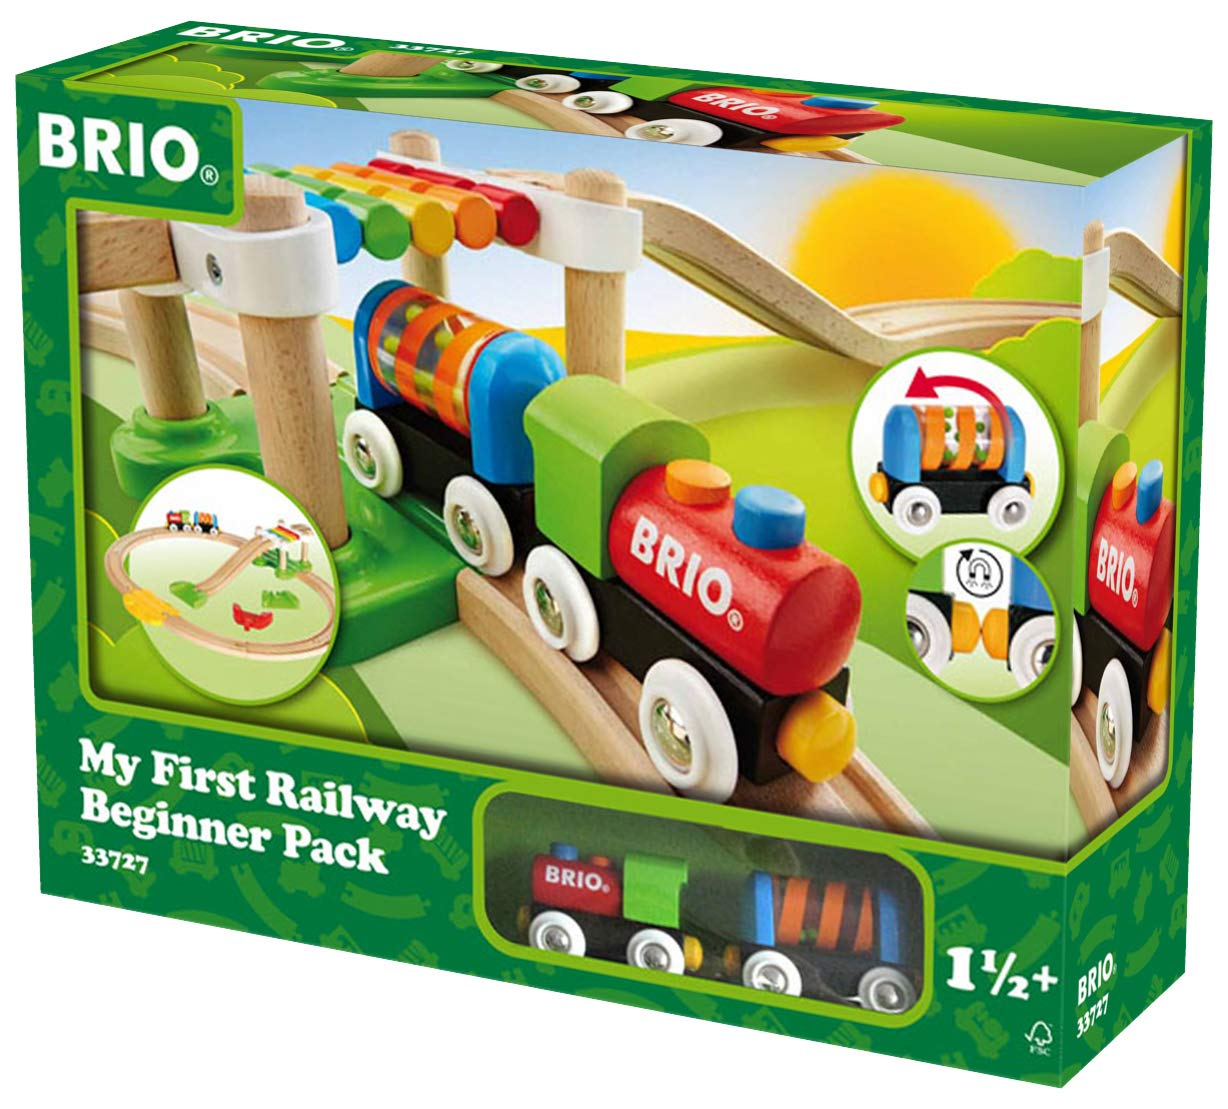 Top 9 Best Train Sets for Toddlers (2019 Reviews) 5